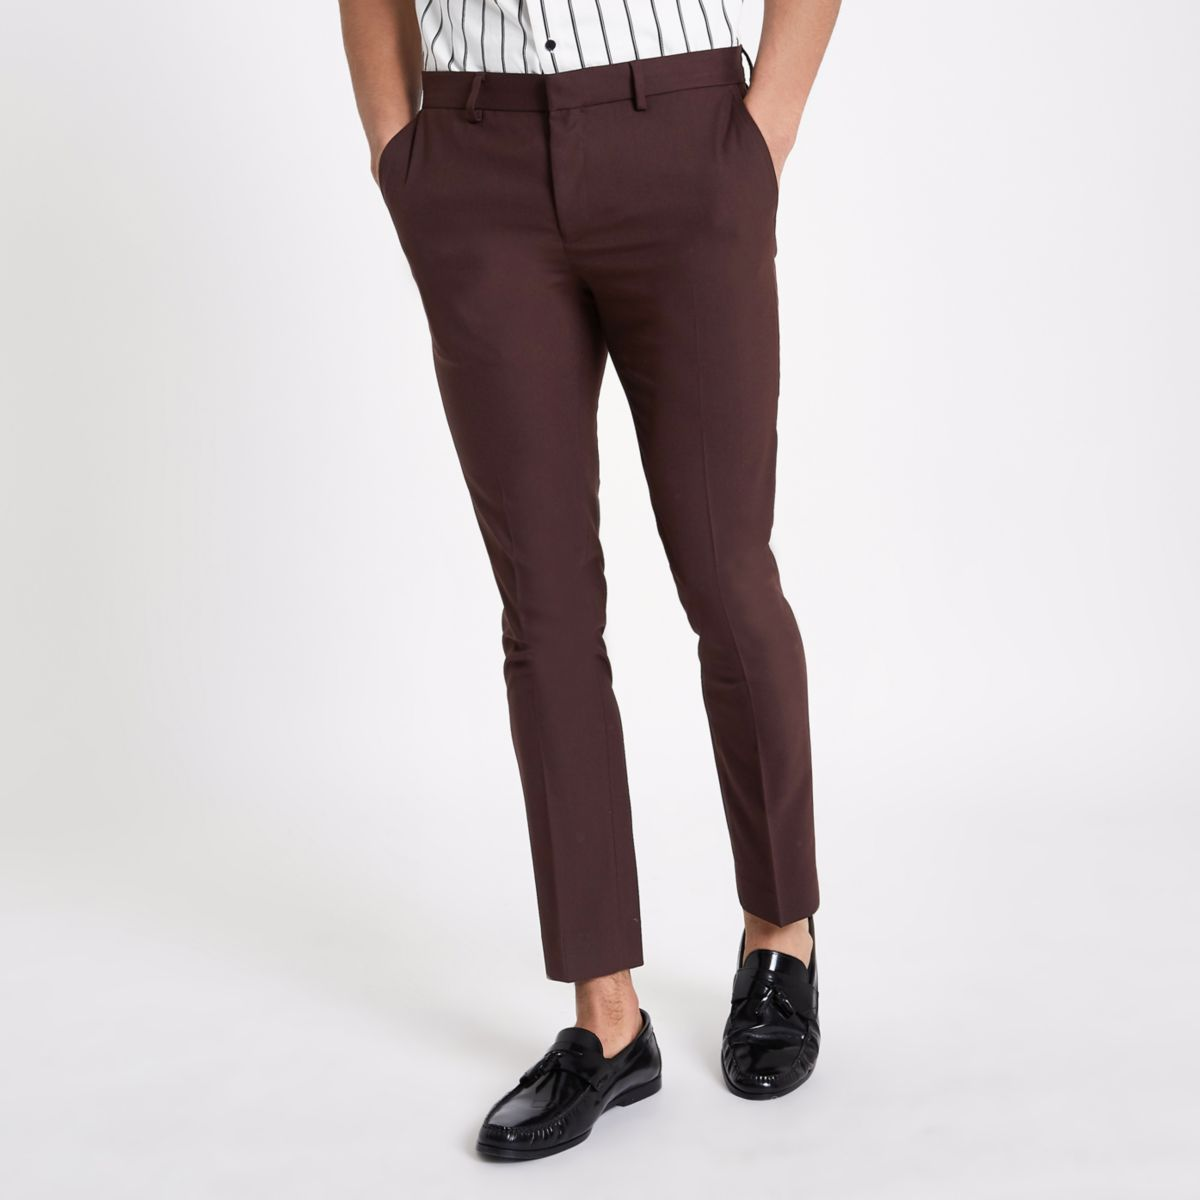 Burgundy super skinny smart pants